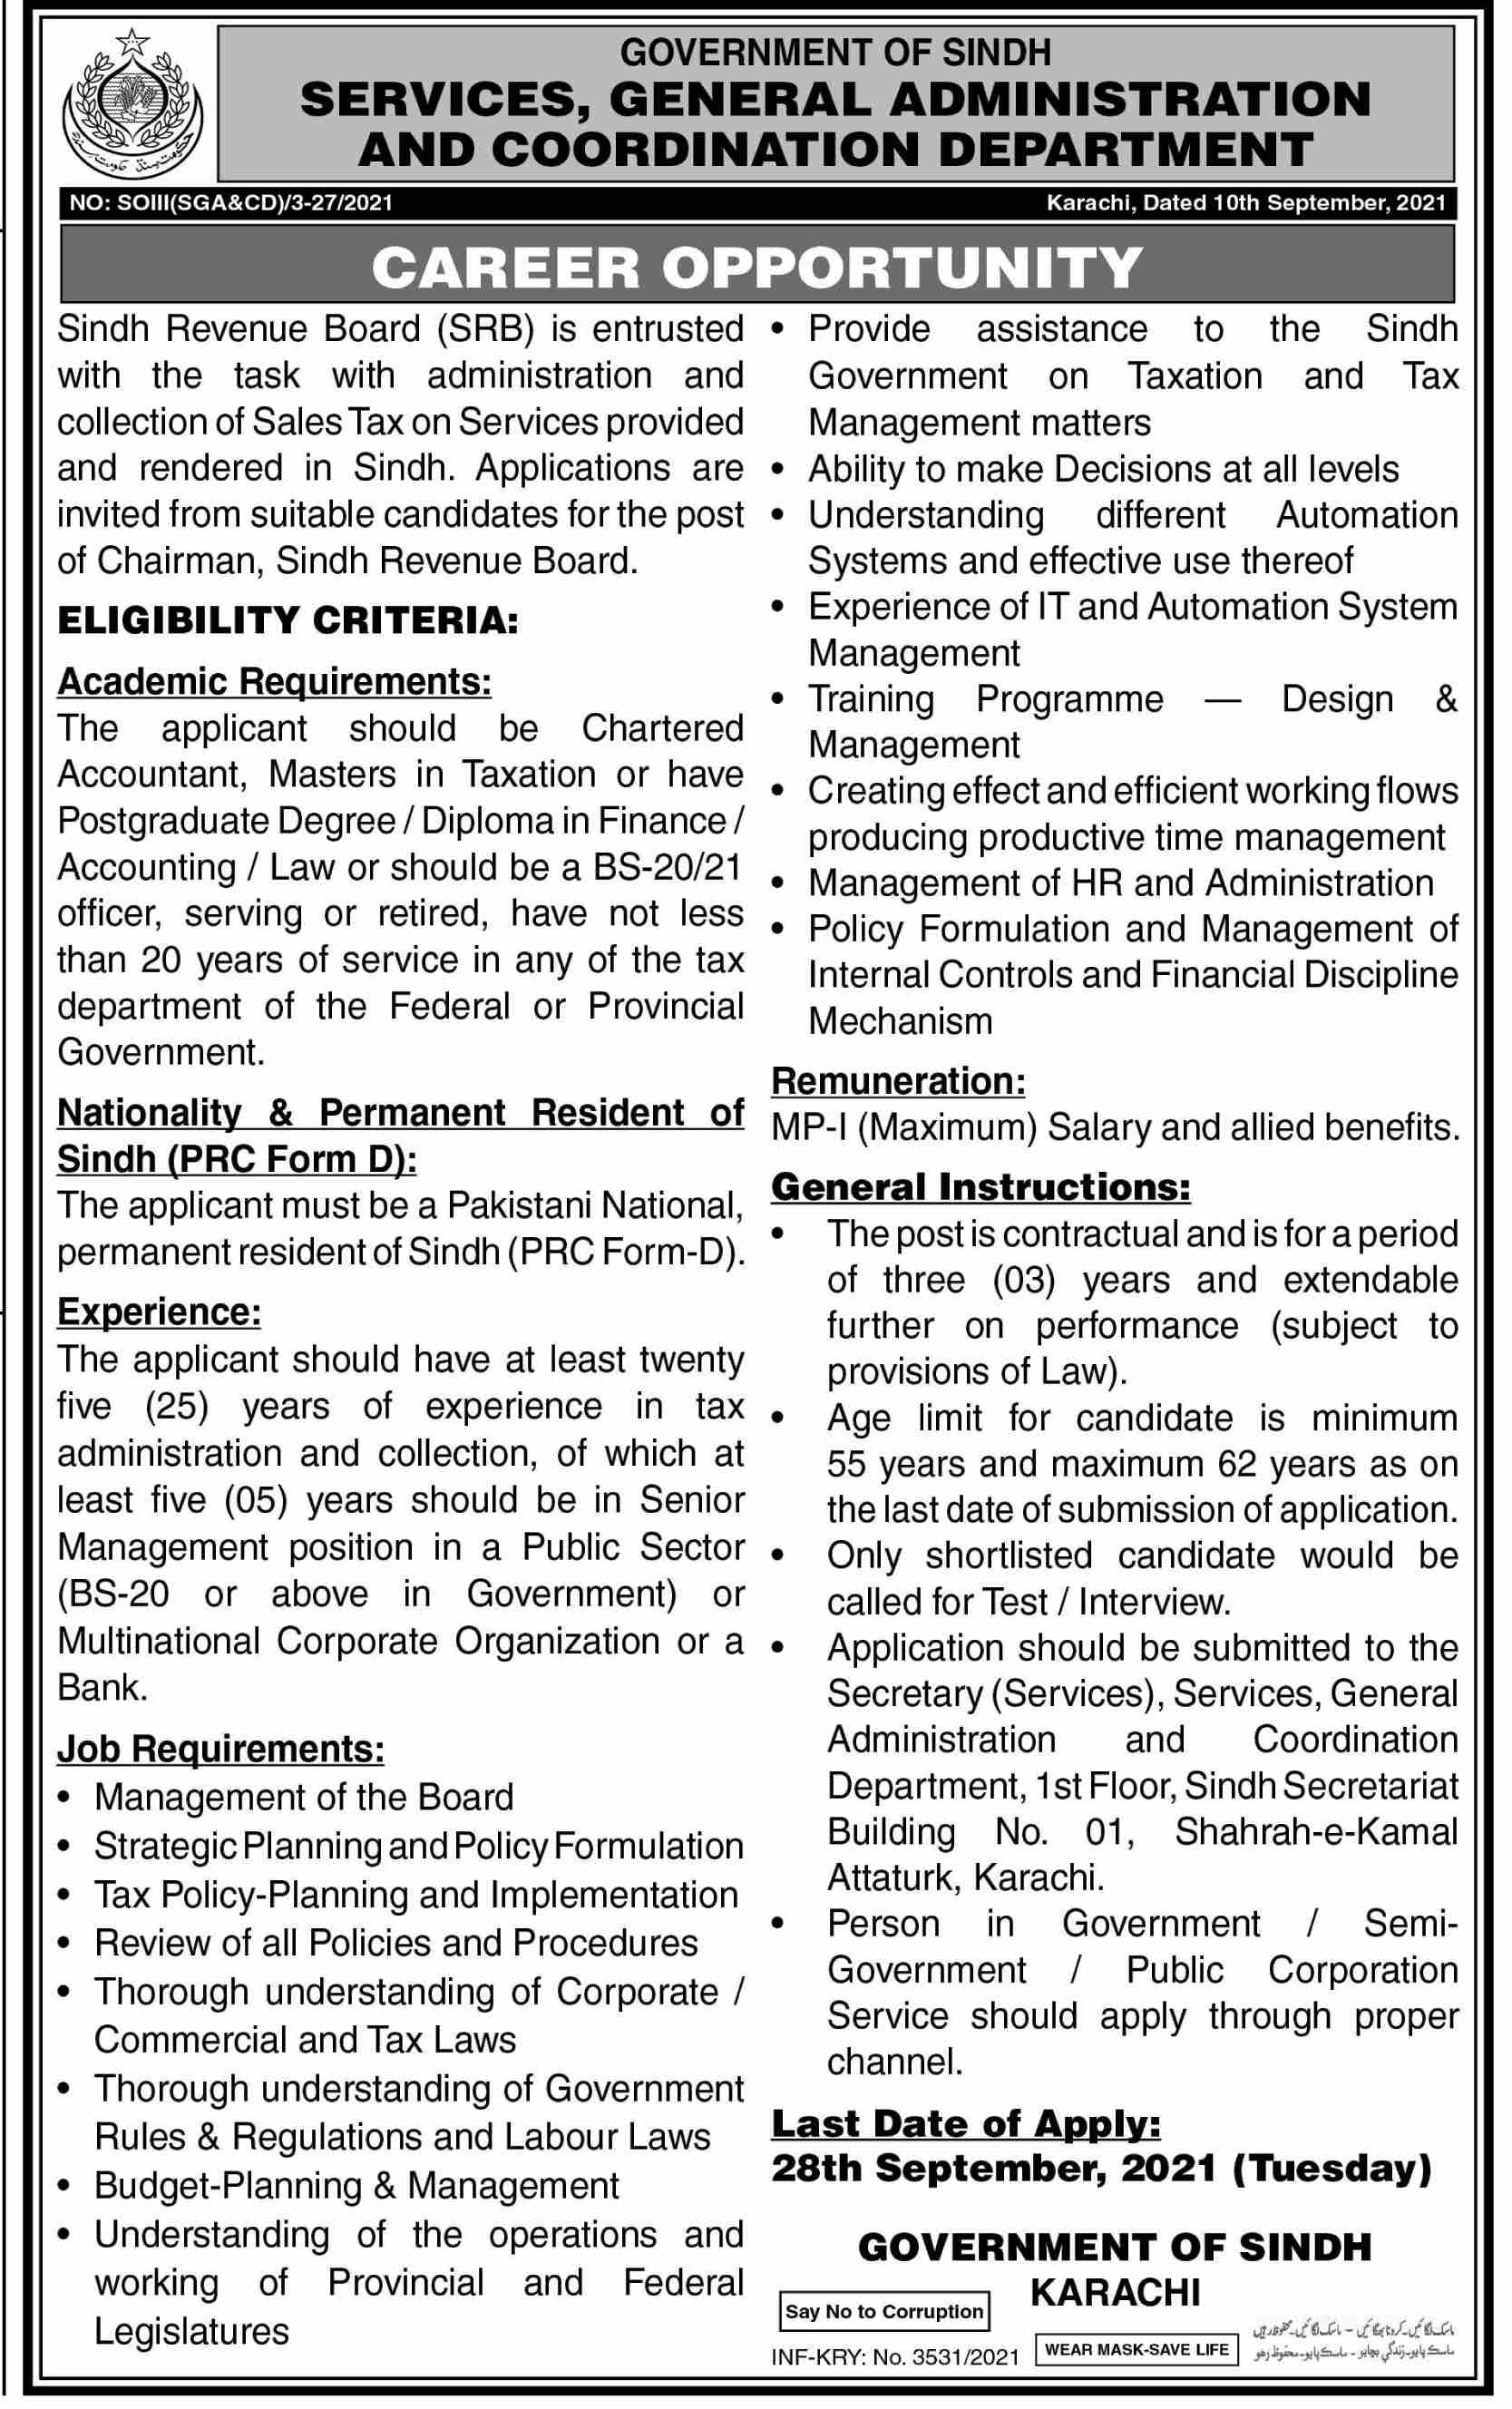 Services General Administration & Coordination Department jobs newspaper ad for Chairman in Karachi on 2021-09-11